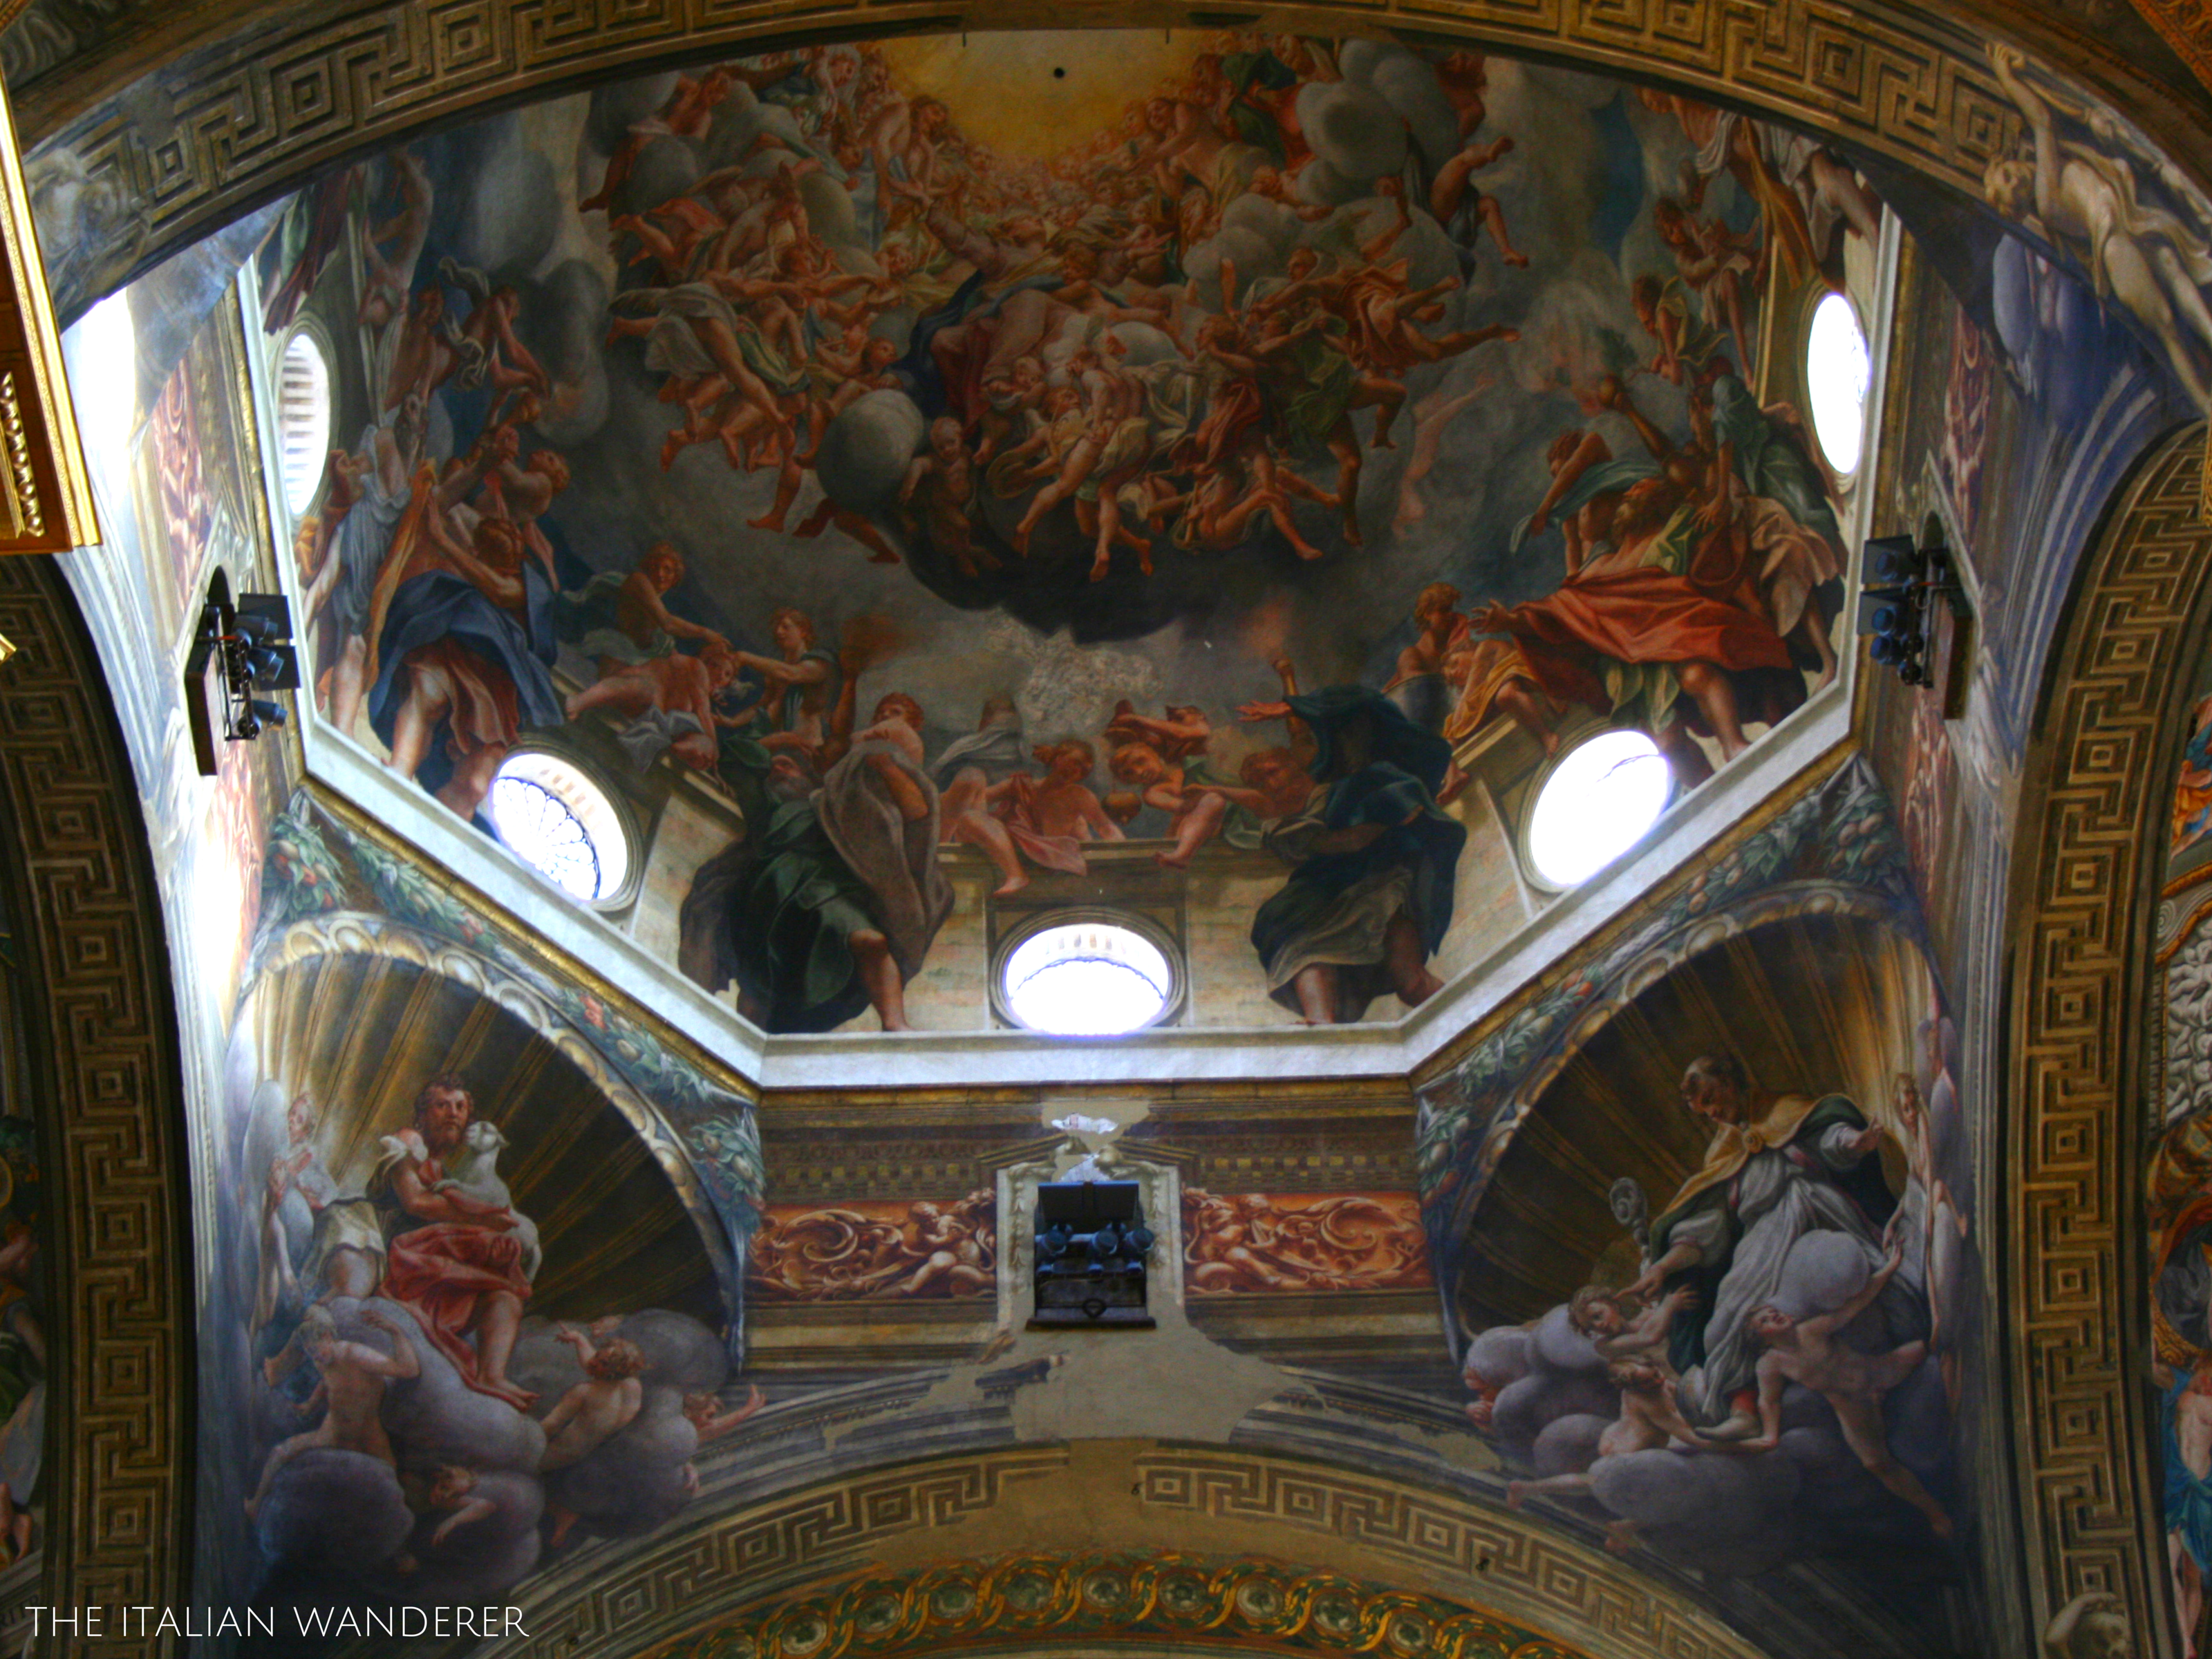 The interiors of Parma's Cathedral